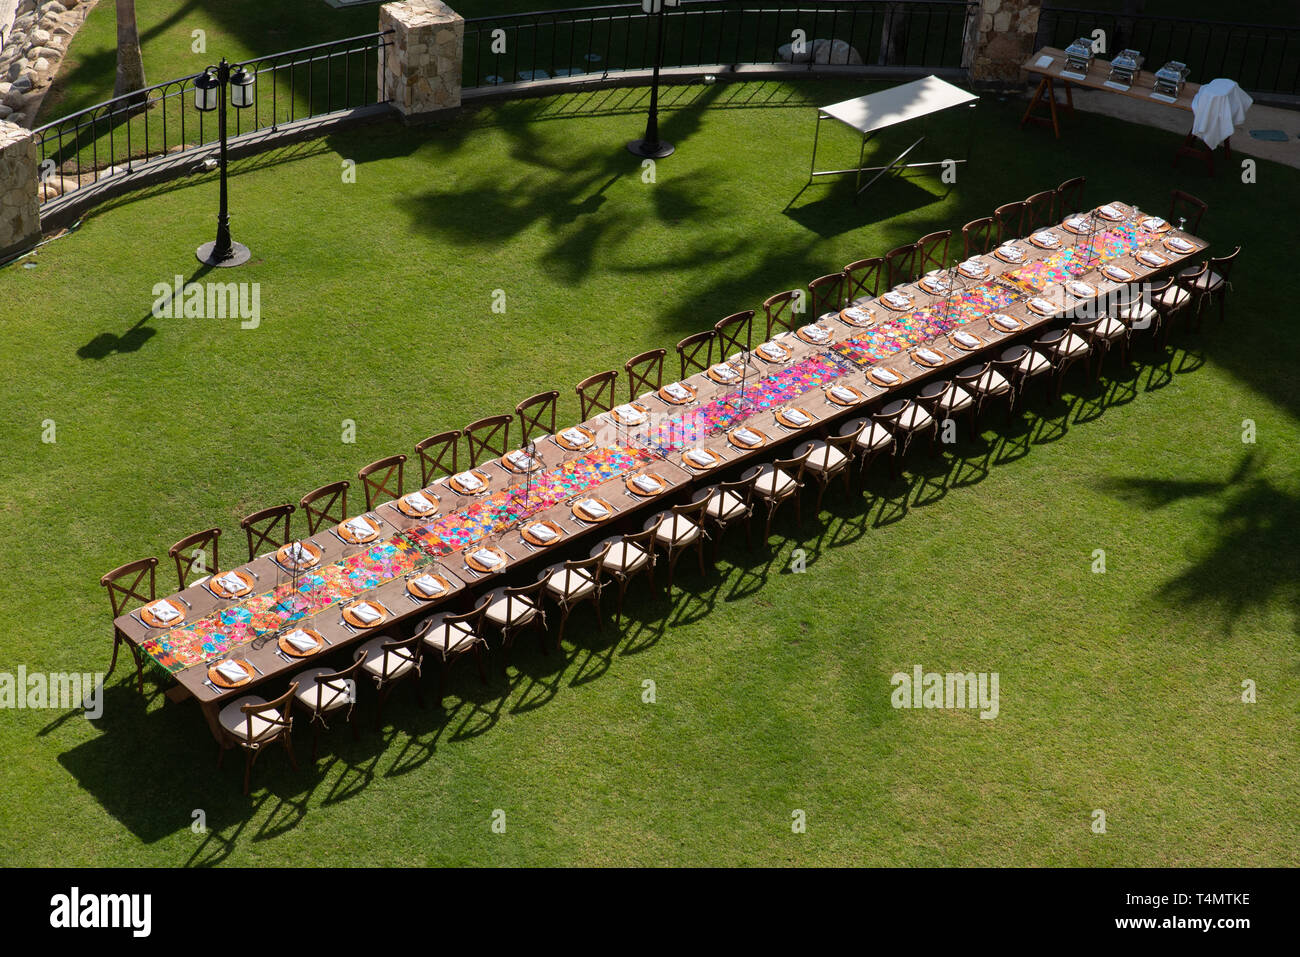 Short Order Restaurant High Resolution Stock Photography And Images Alamy